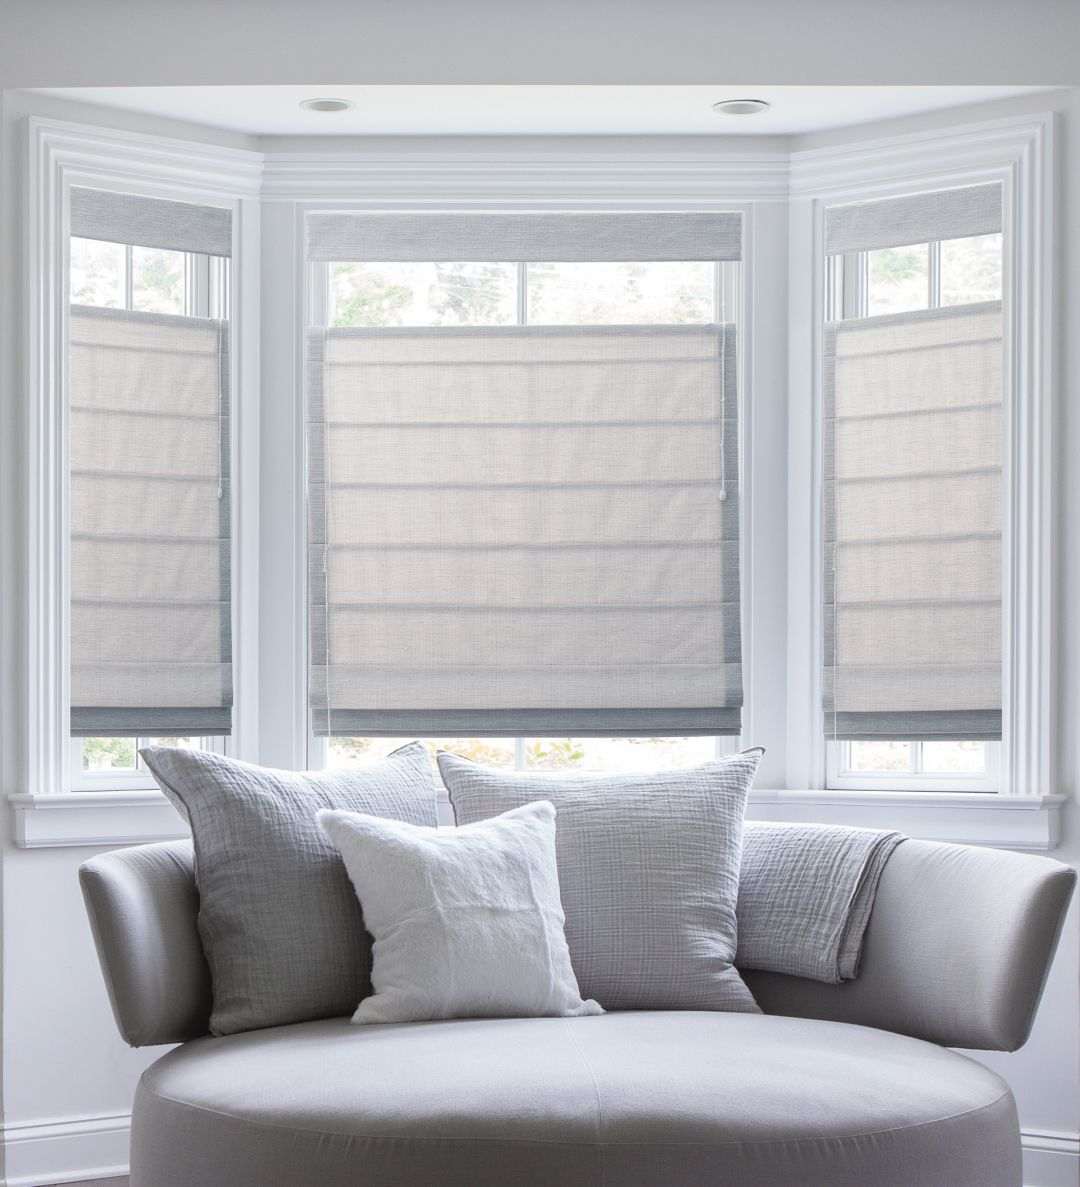 Diy Roman Shades For French Doors Top Down Bottom Up Plain Classic Pleated Roman Shades In